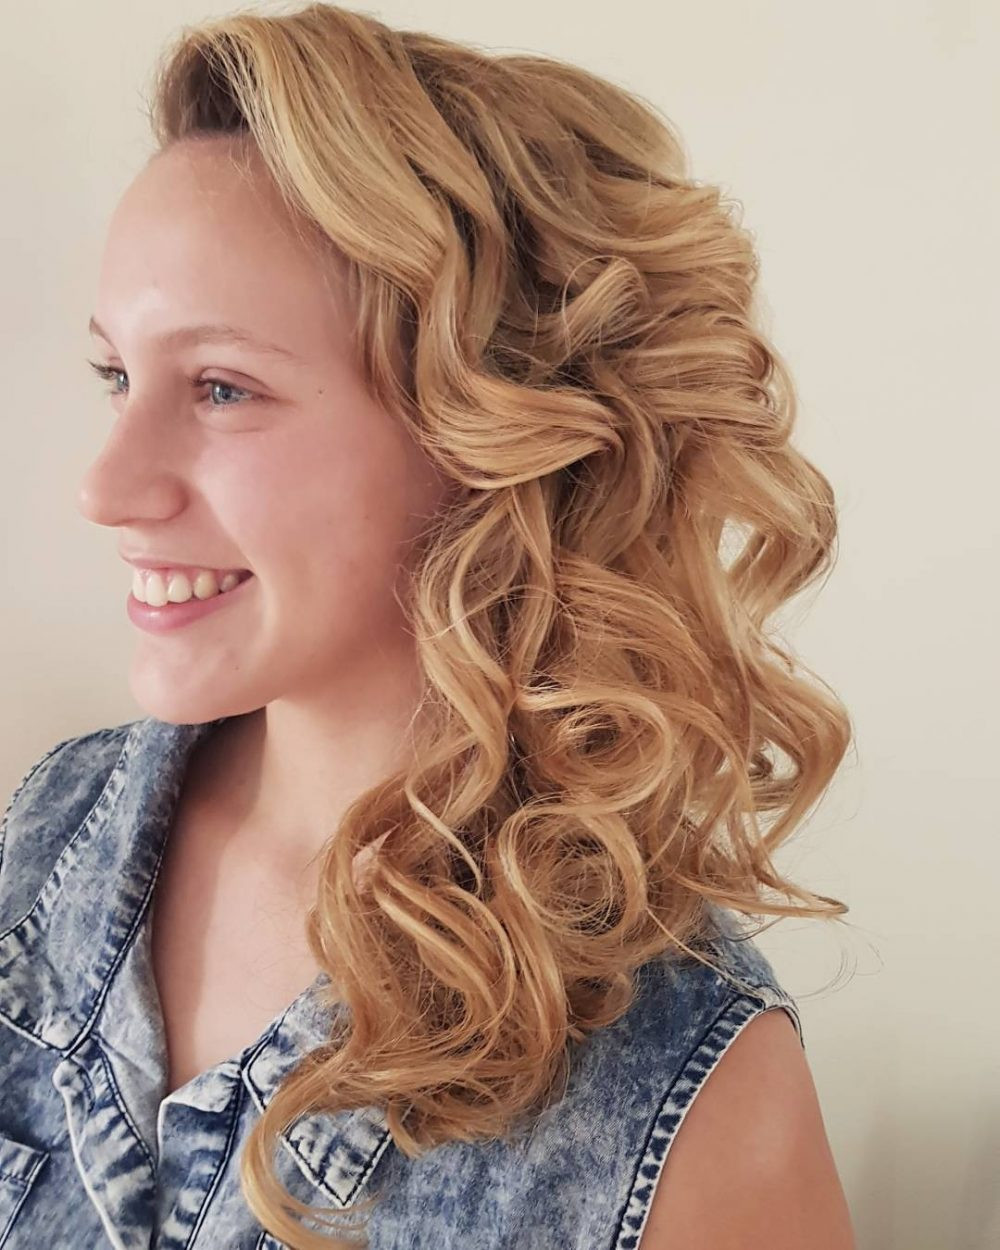 Side Hairstyles For Prom  Side Hairstyles for Prom Gorgeous Side Prom Hairstyles